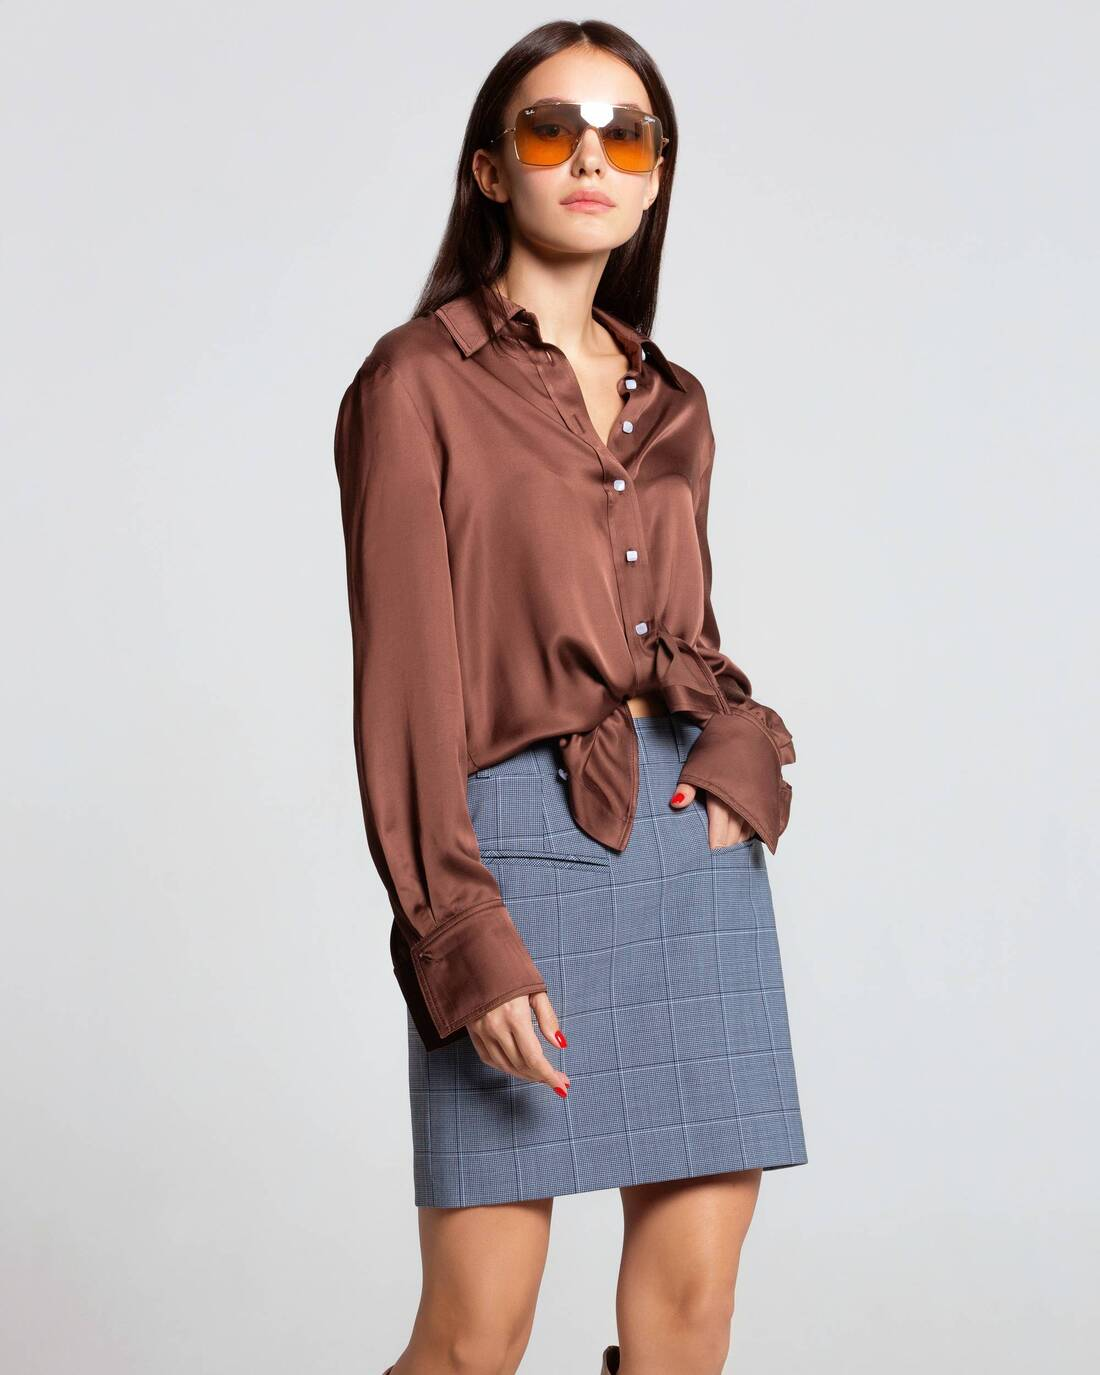 Classic satin blouse with a turn-down collar